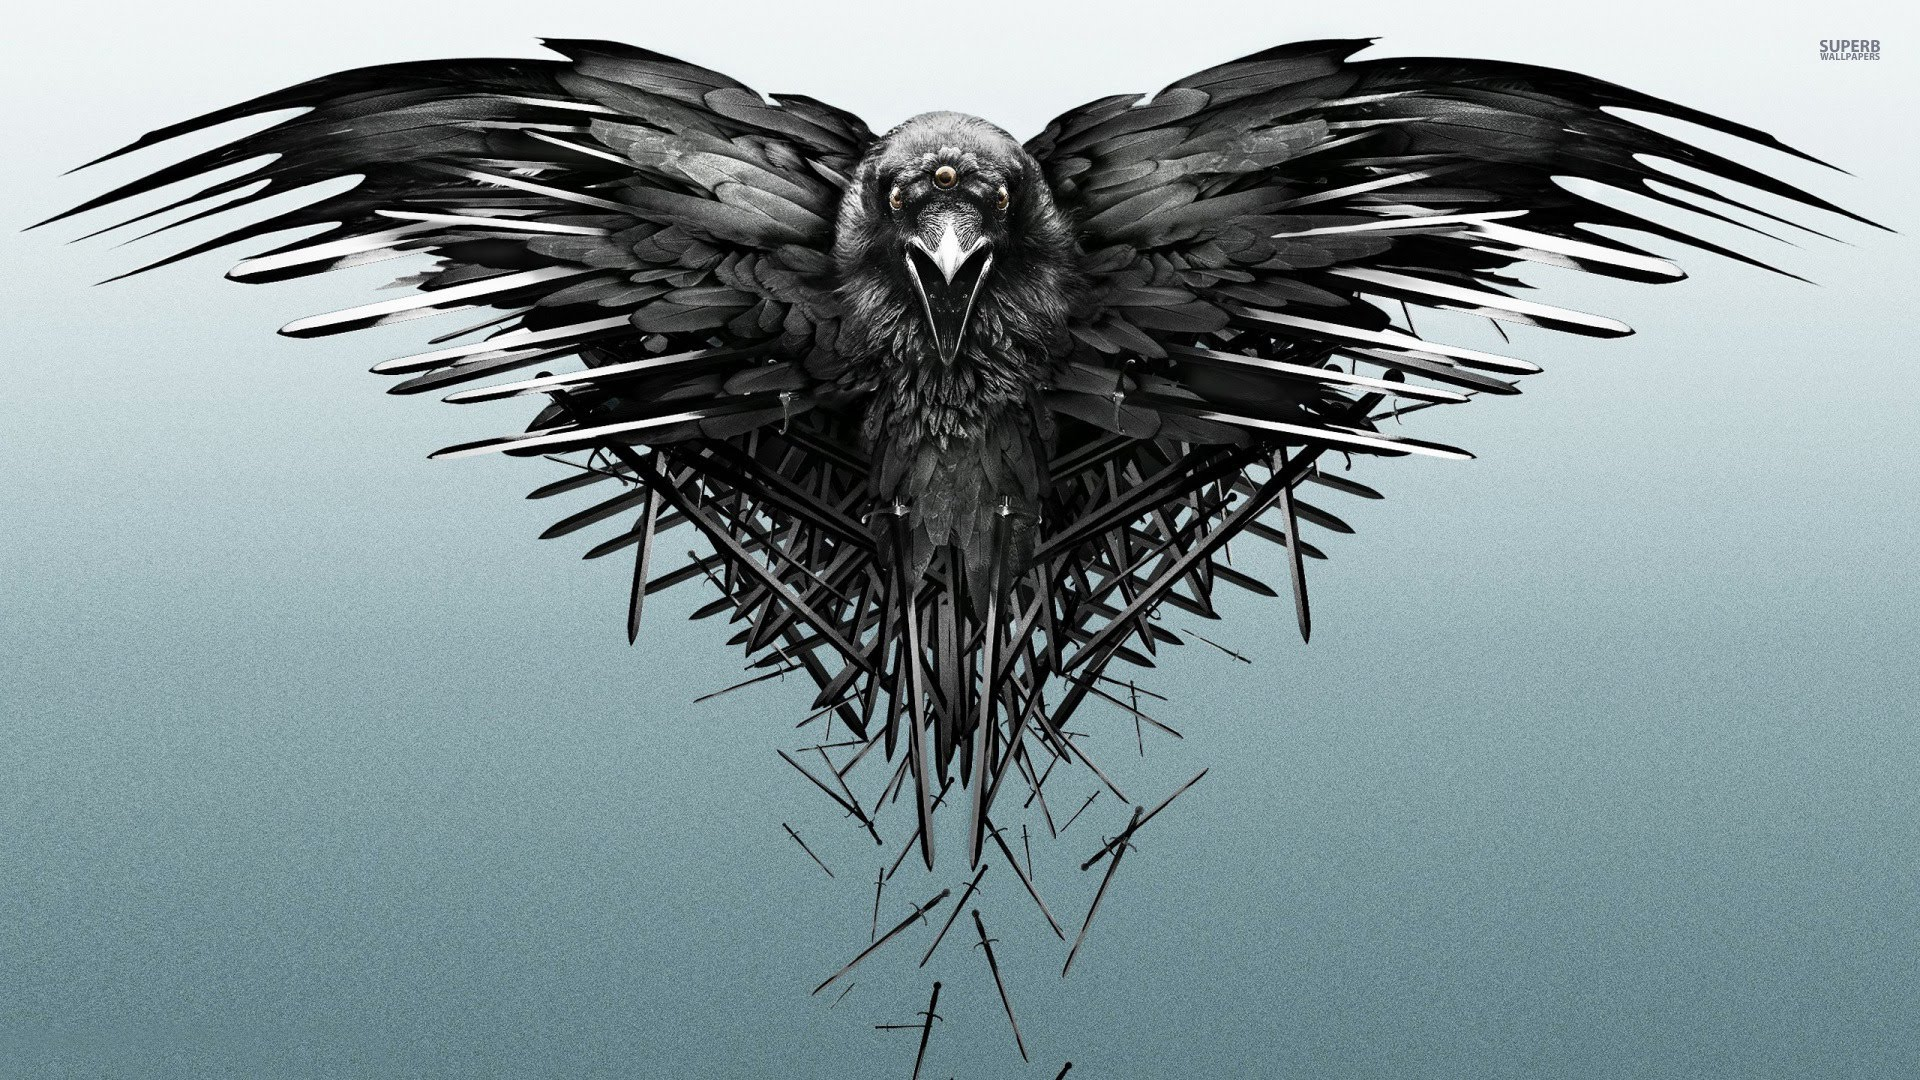 1920x1080 Game Of Thrones